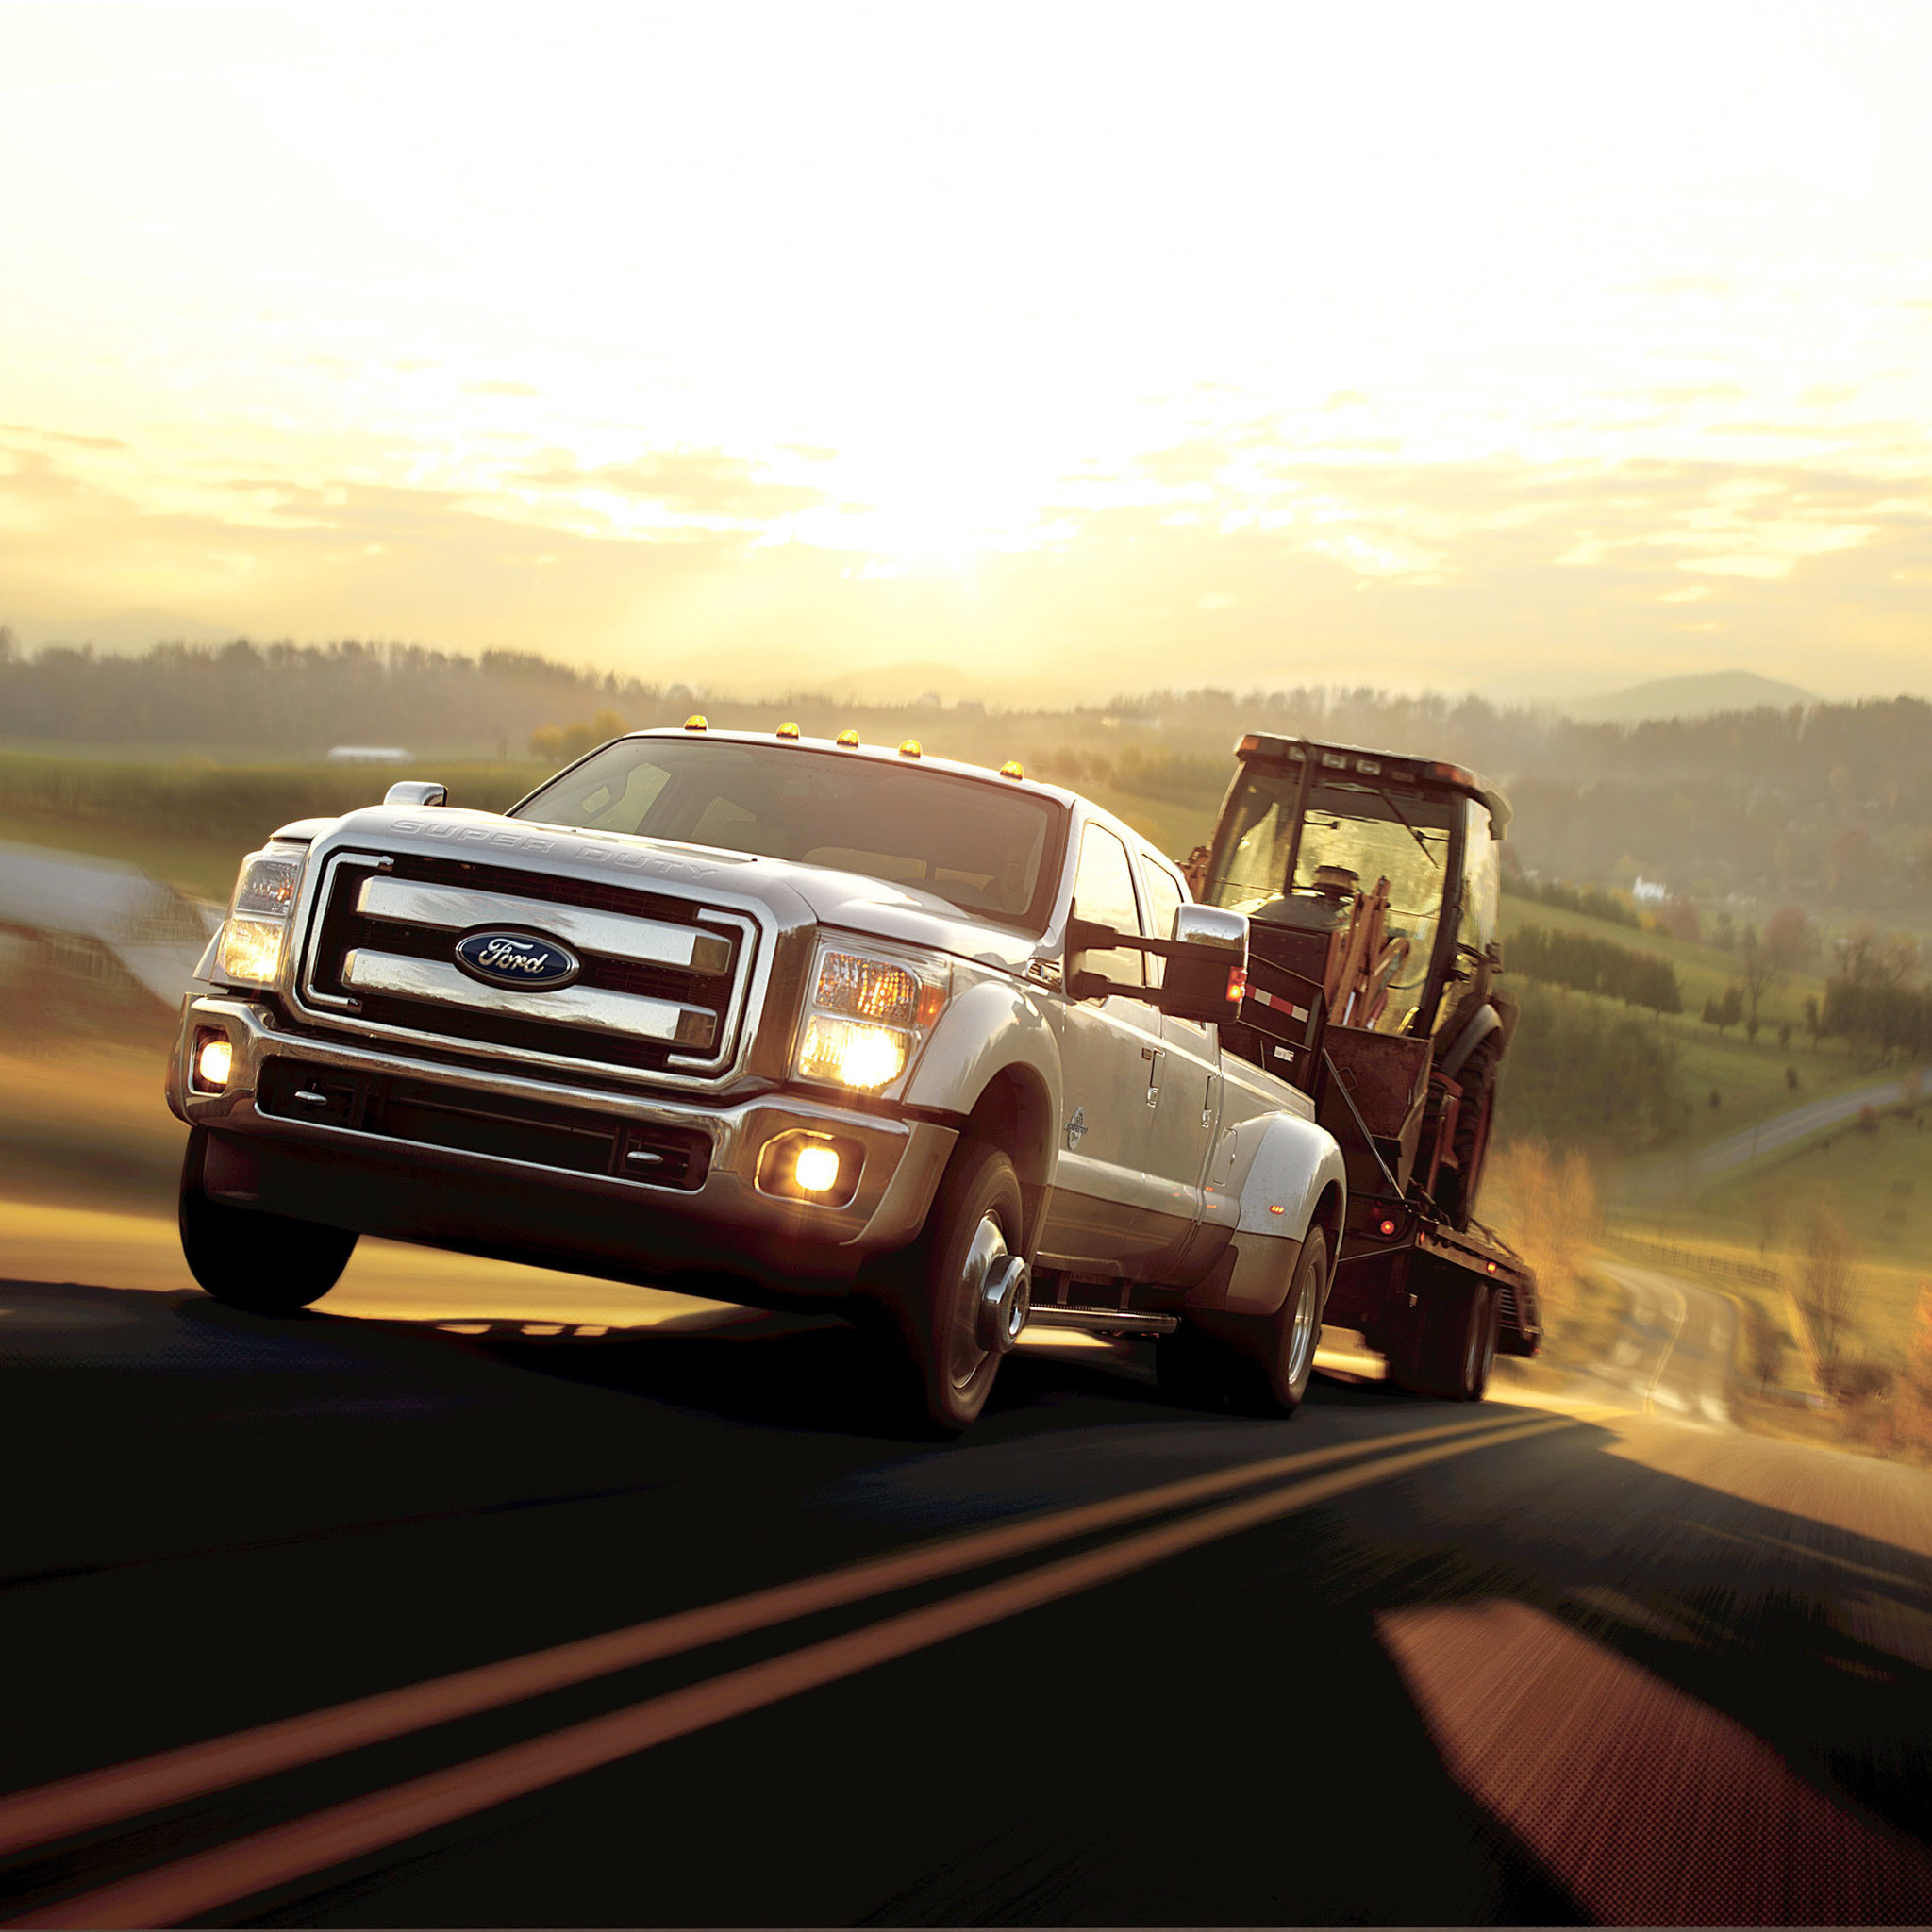 2048 x 2048 iPod 3 wallpapers, backgrounds – Ford F 450 Super Duty